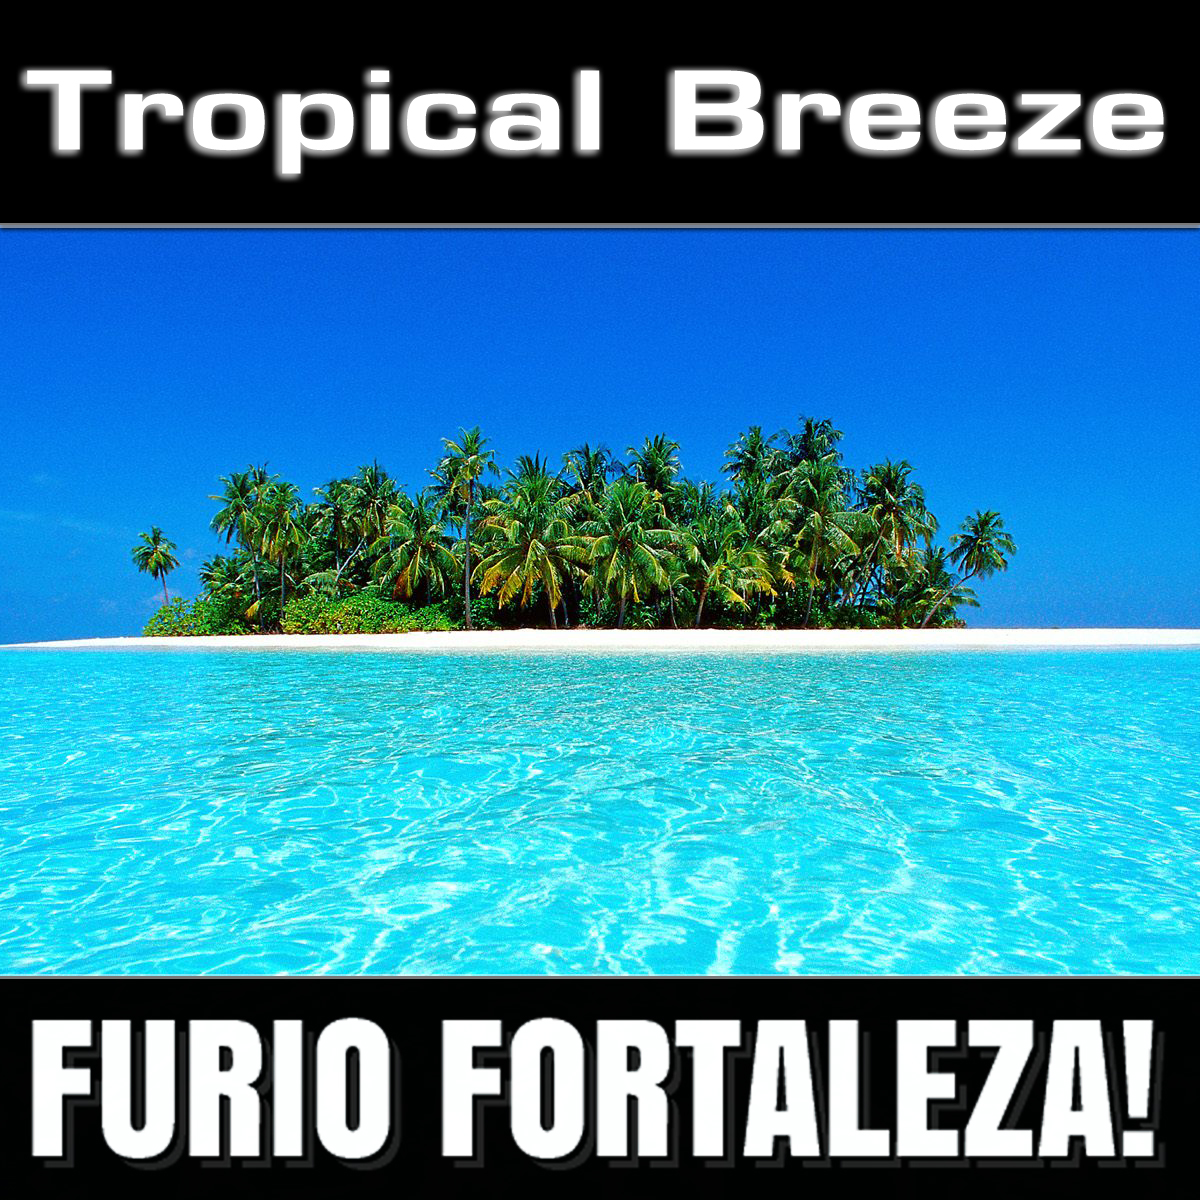 Furio Fortaleza! - 4.8 - Tropical Breeze